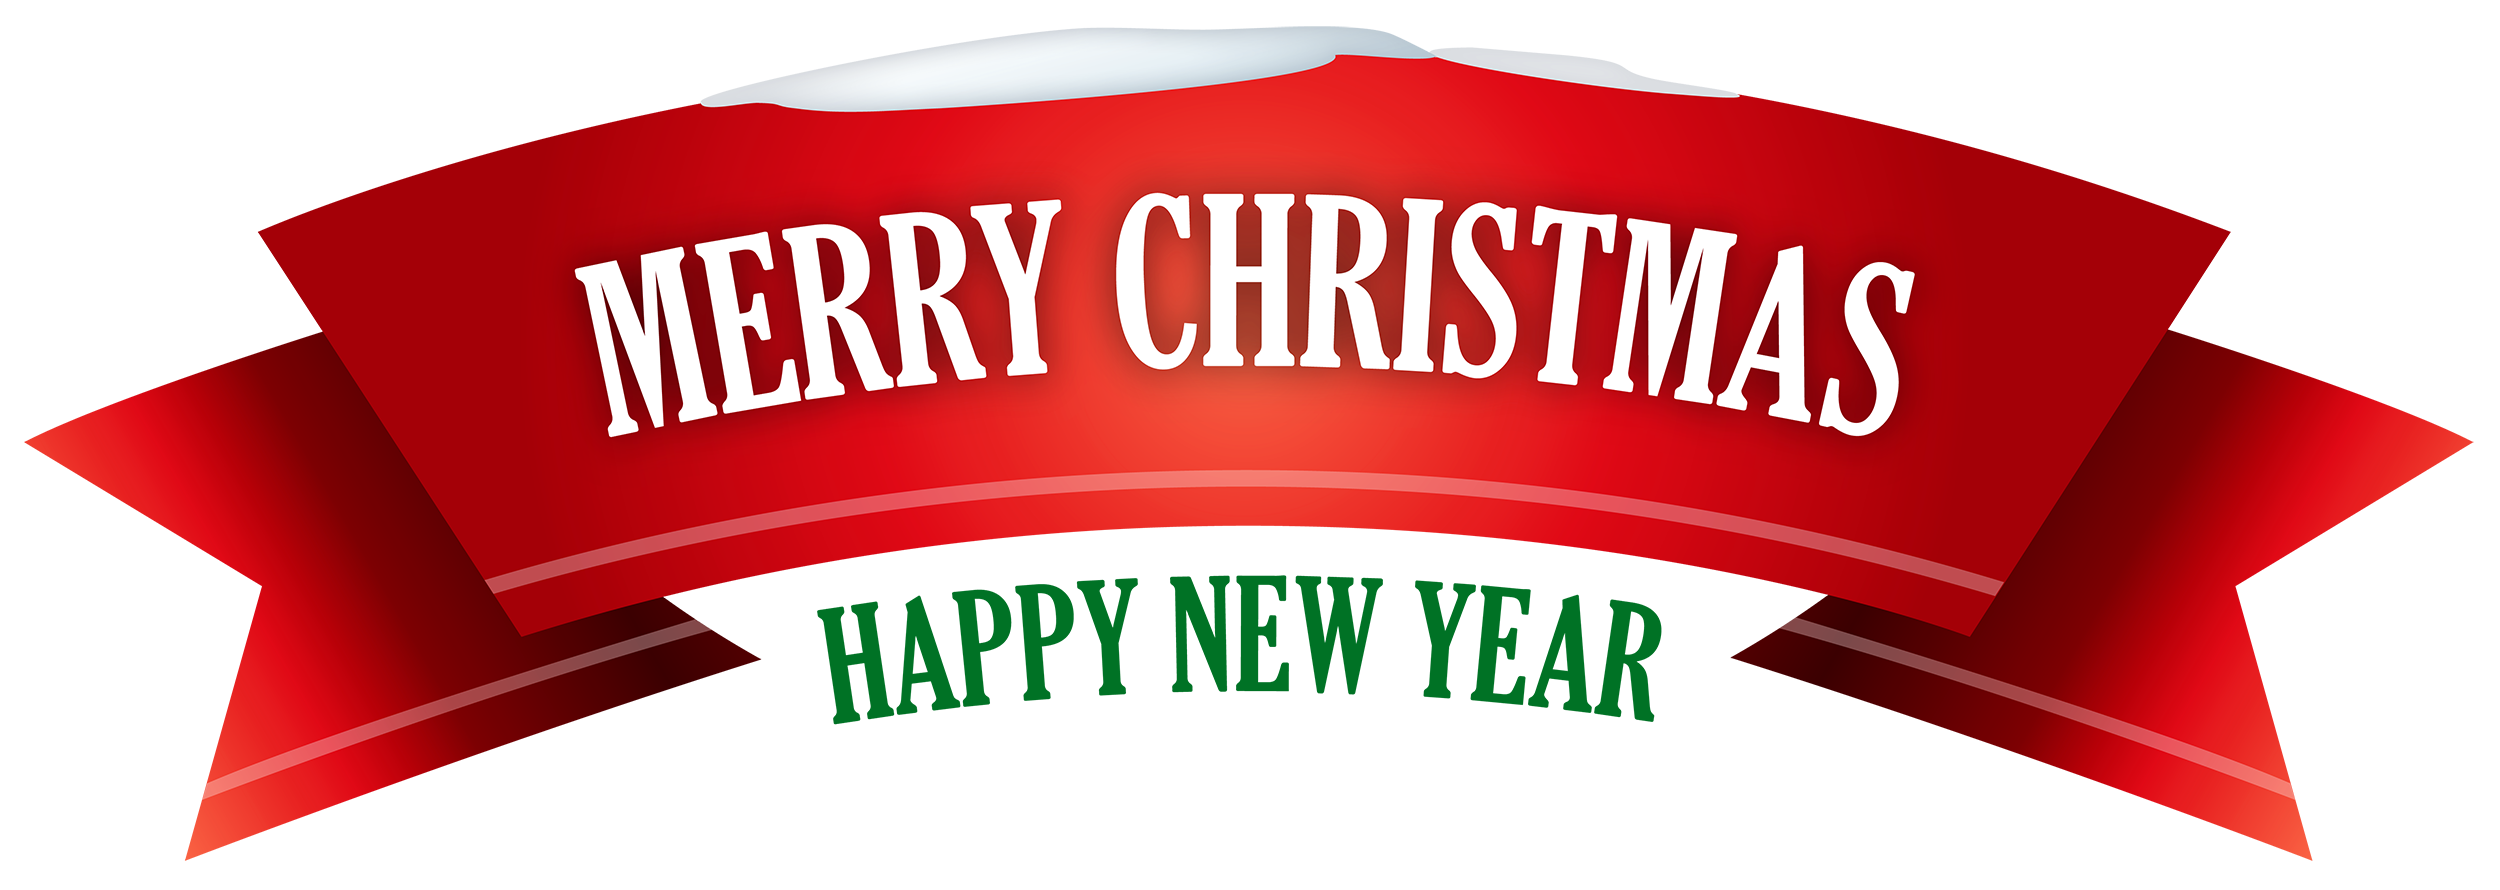 Christmas welcome clipart svg freeuse stock Merry Christmas Banner Clipart | cyberuse svg freeuse stock